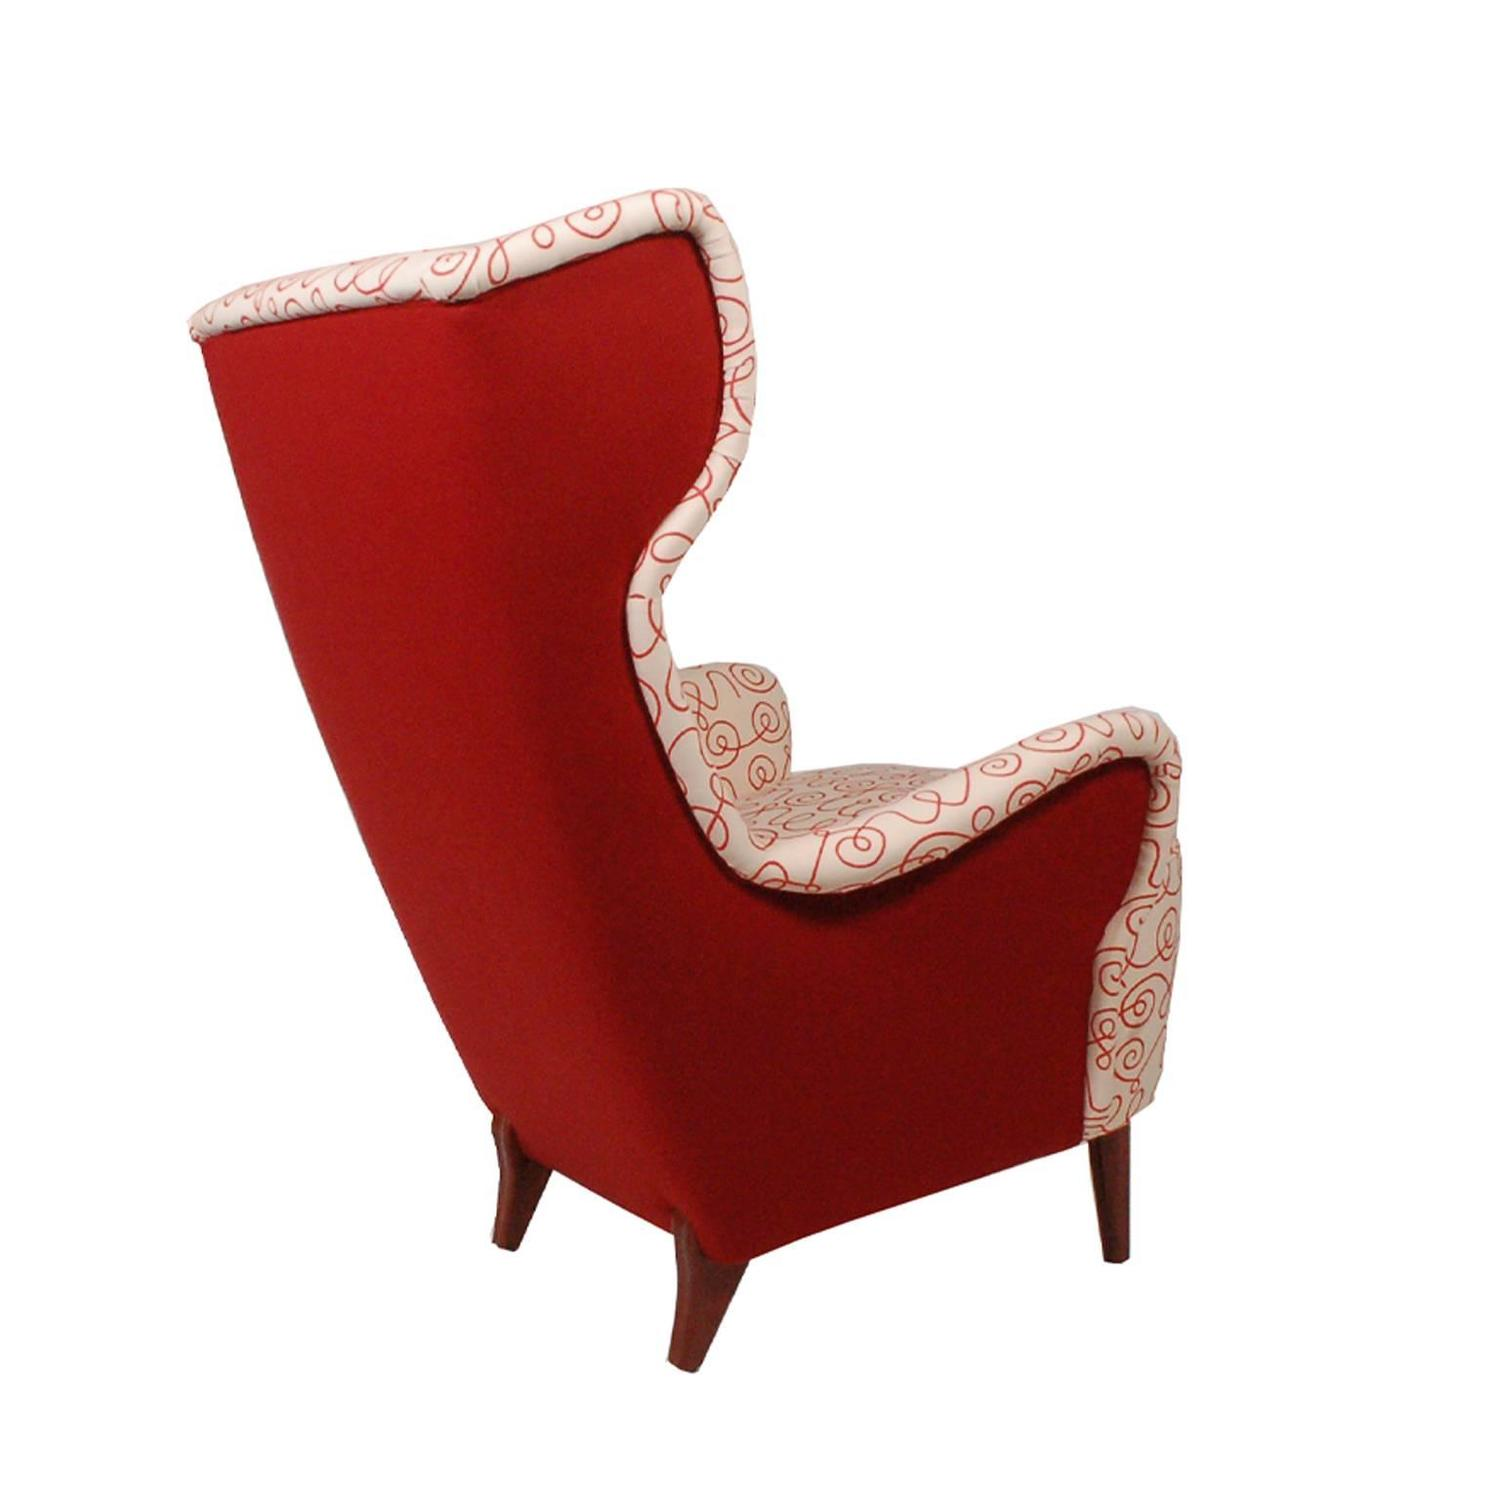 1940s Carl Malmsten Easy Chair For Sale At 1stdibs